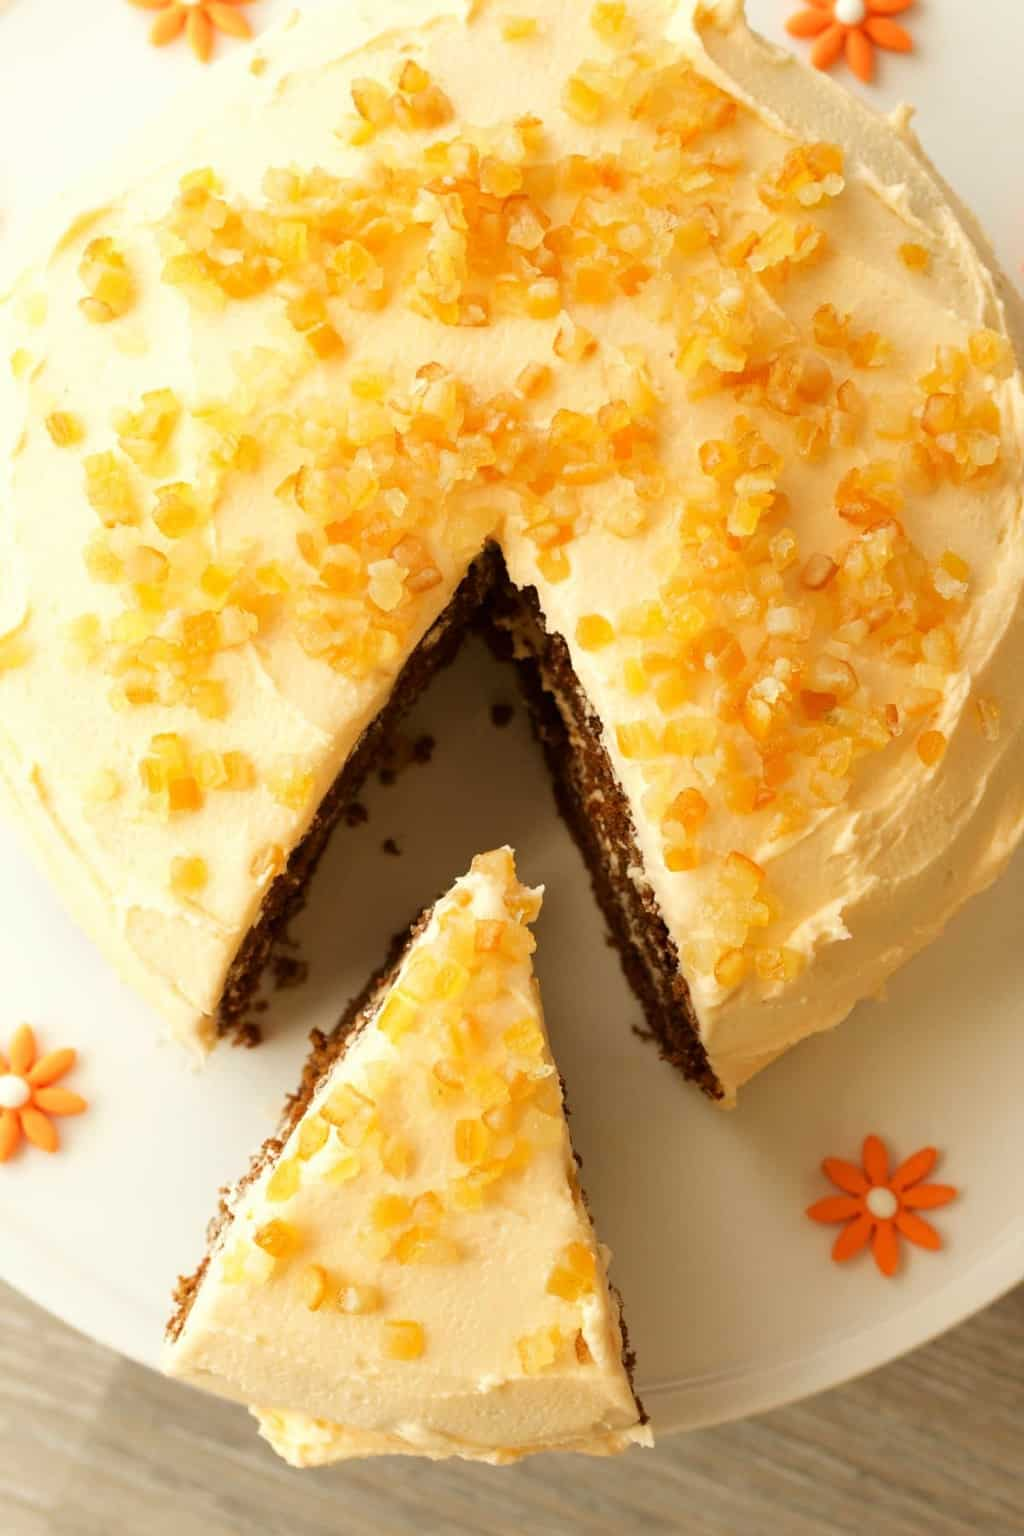 how to make orange flavored frosting